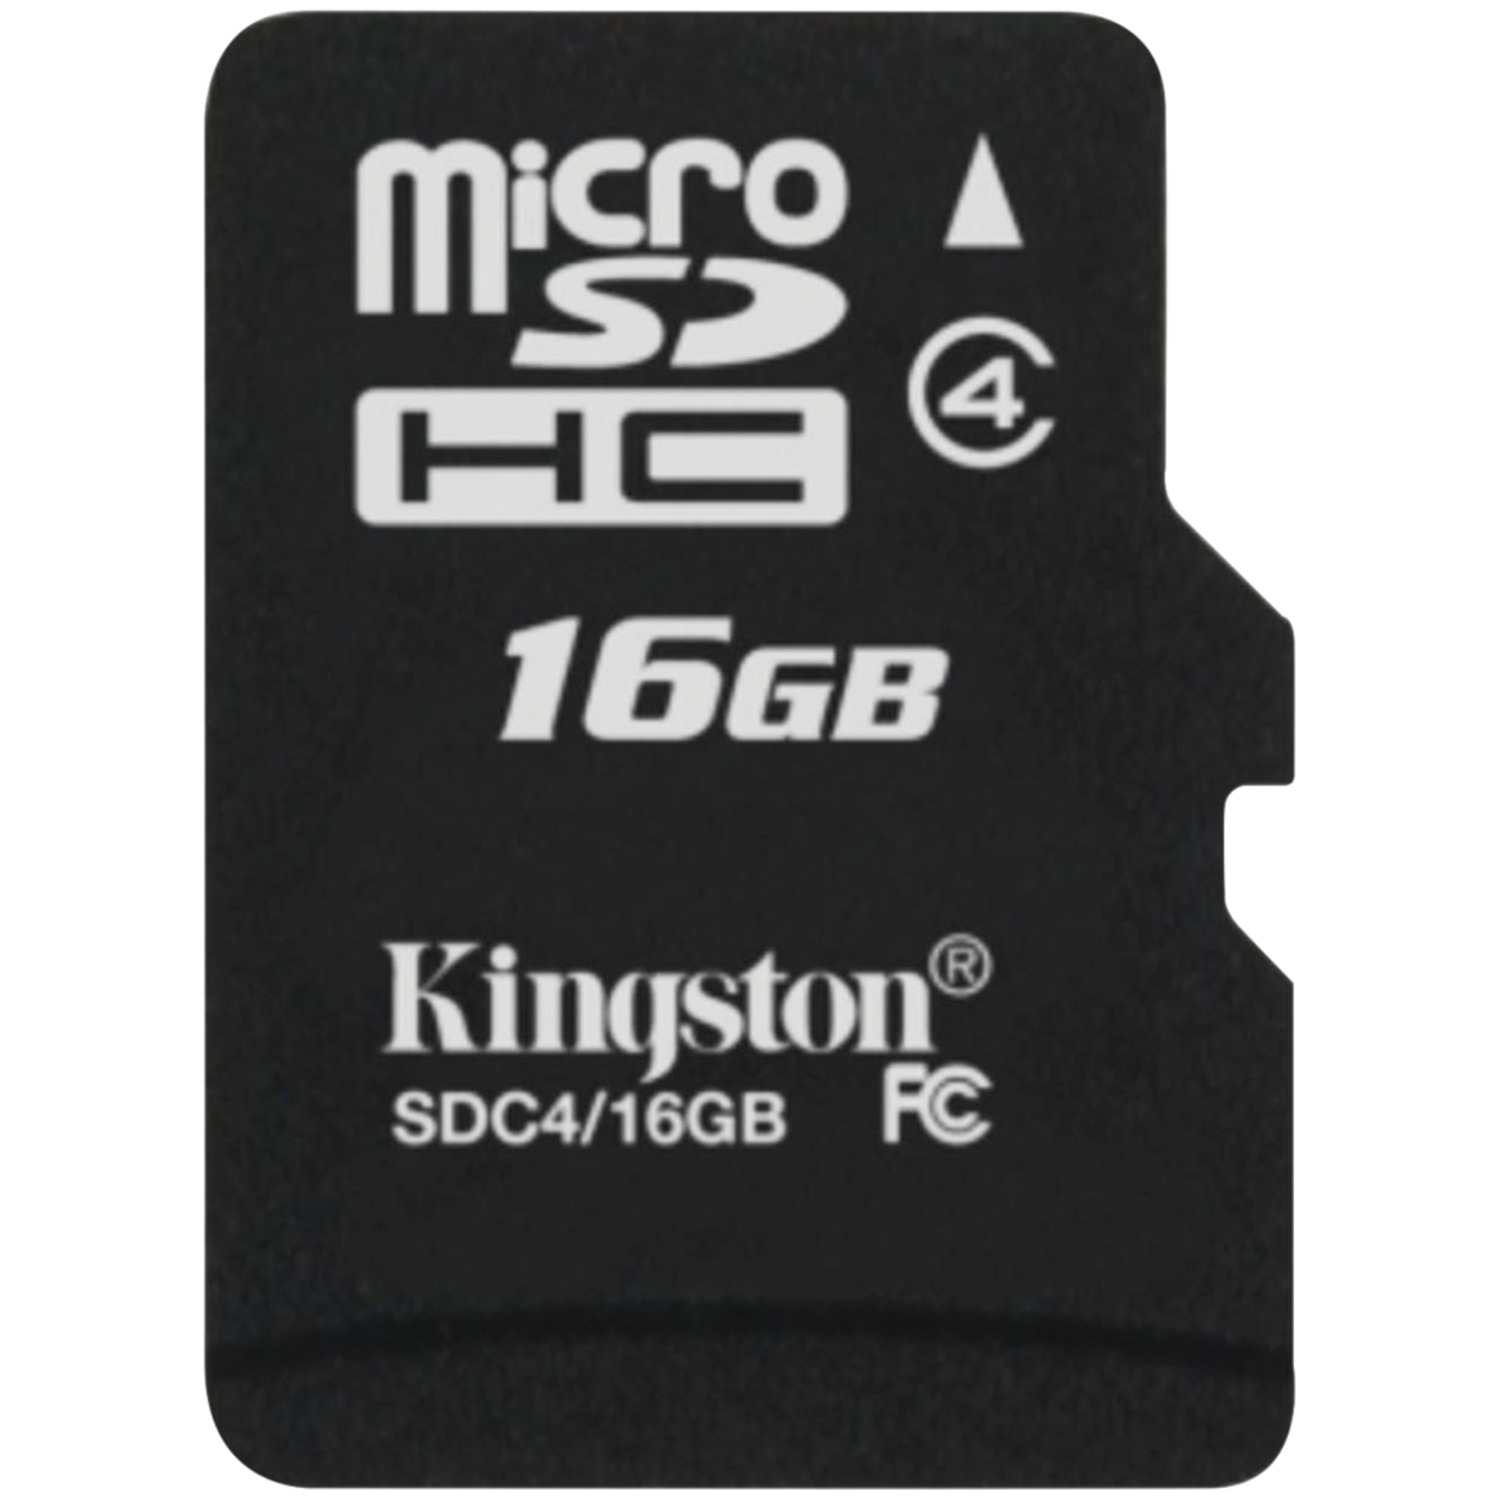 Kingston SDC4/16GB Class 4 microSDHC Card (16GB with Adapter)